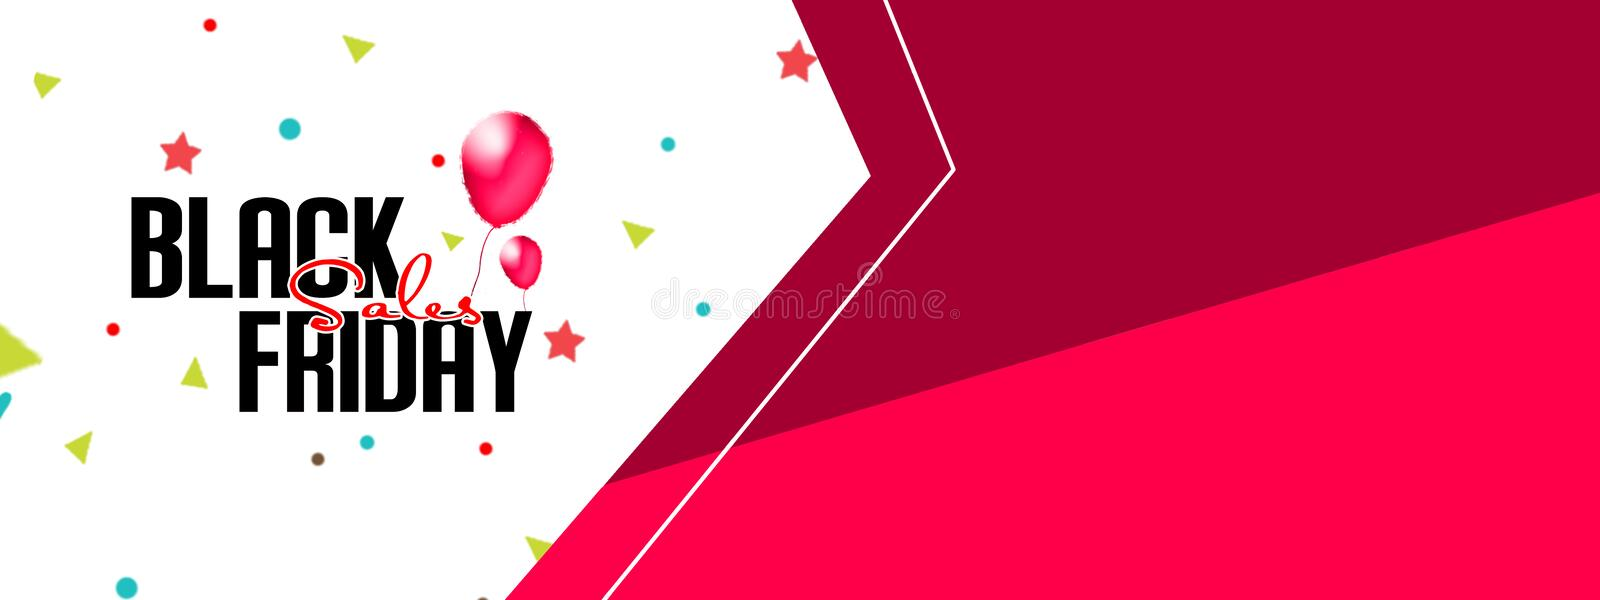 Black Friday text with red balloons on sale banners with confetti and serpentine. white and red background. illustration stock illustration